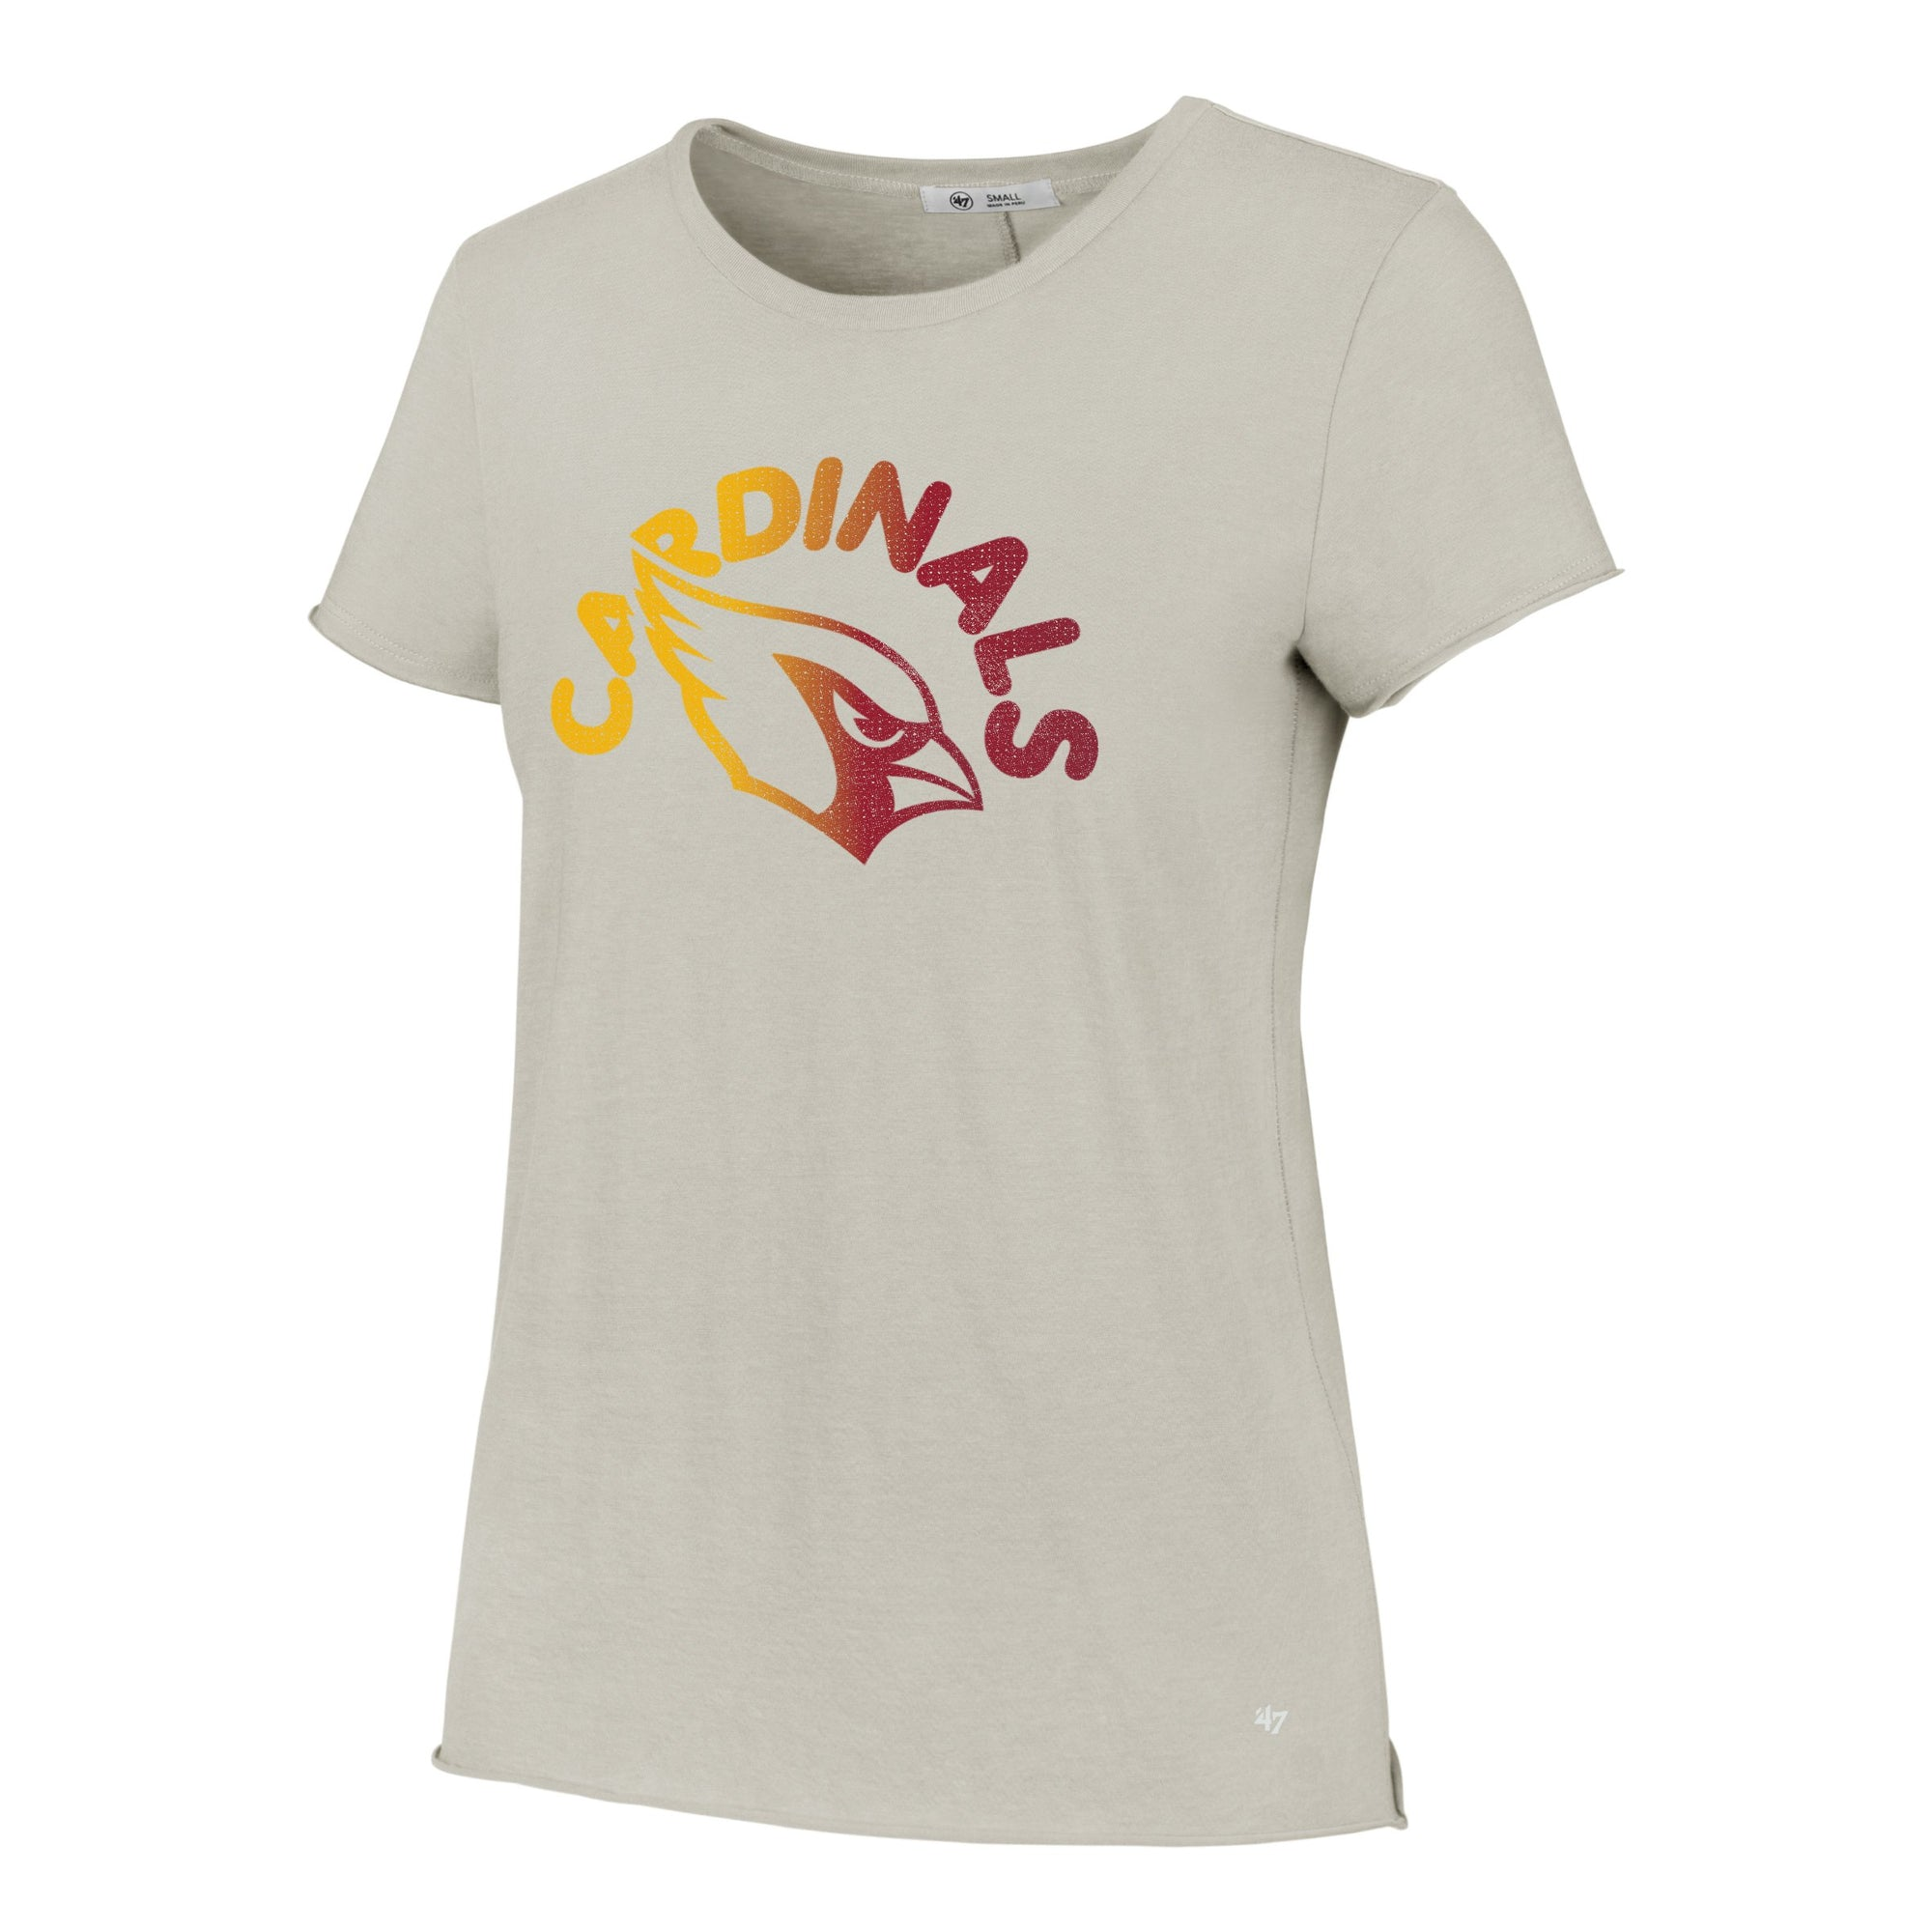 NFL Arizona Cardinals Women's '47 Moonlight Letter Tee - Sand